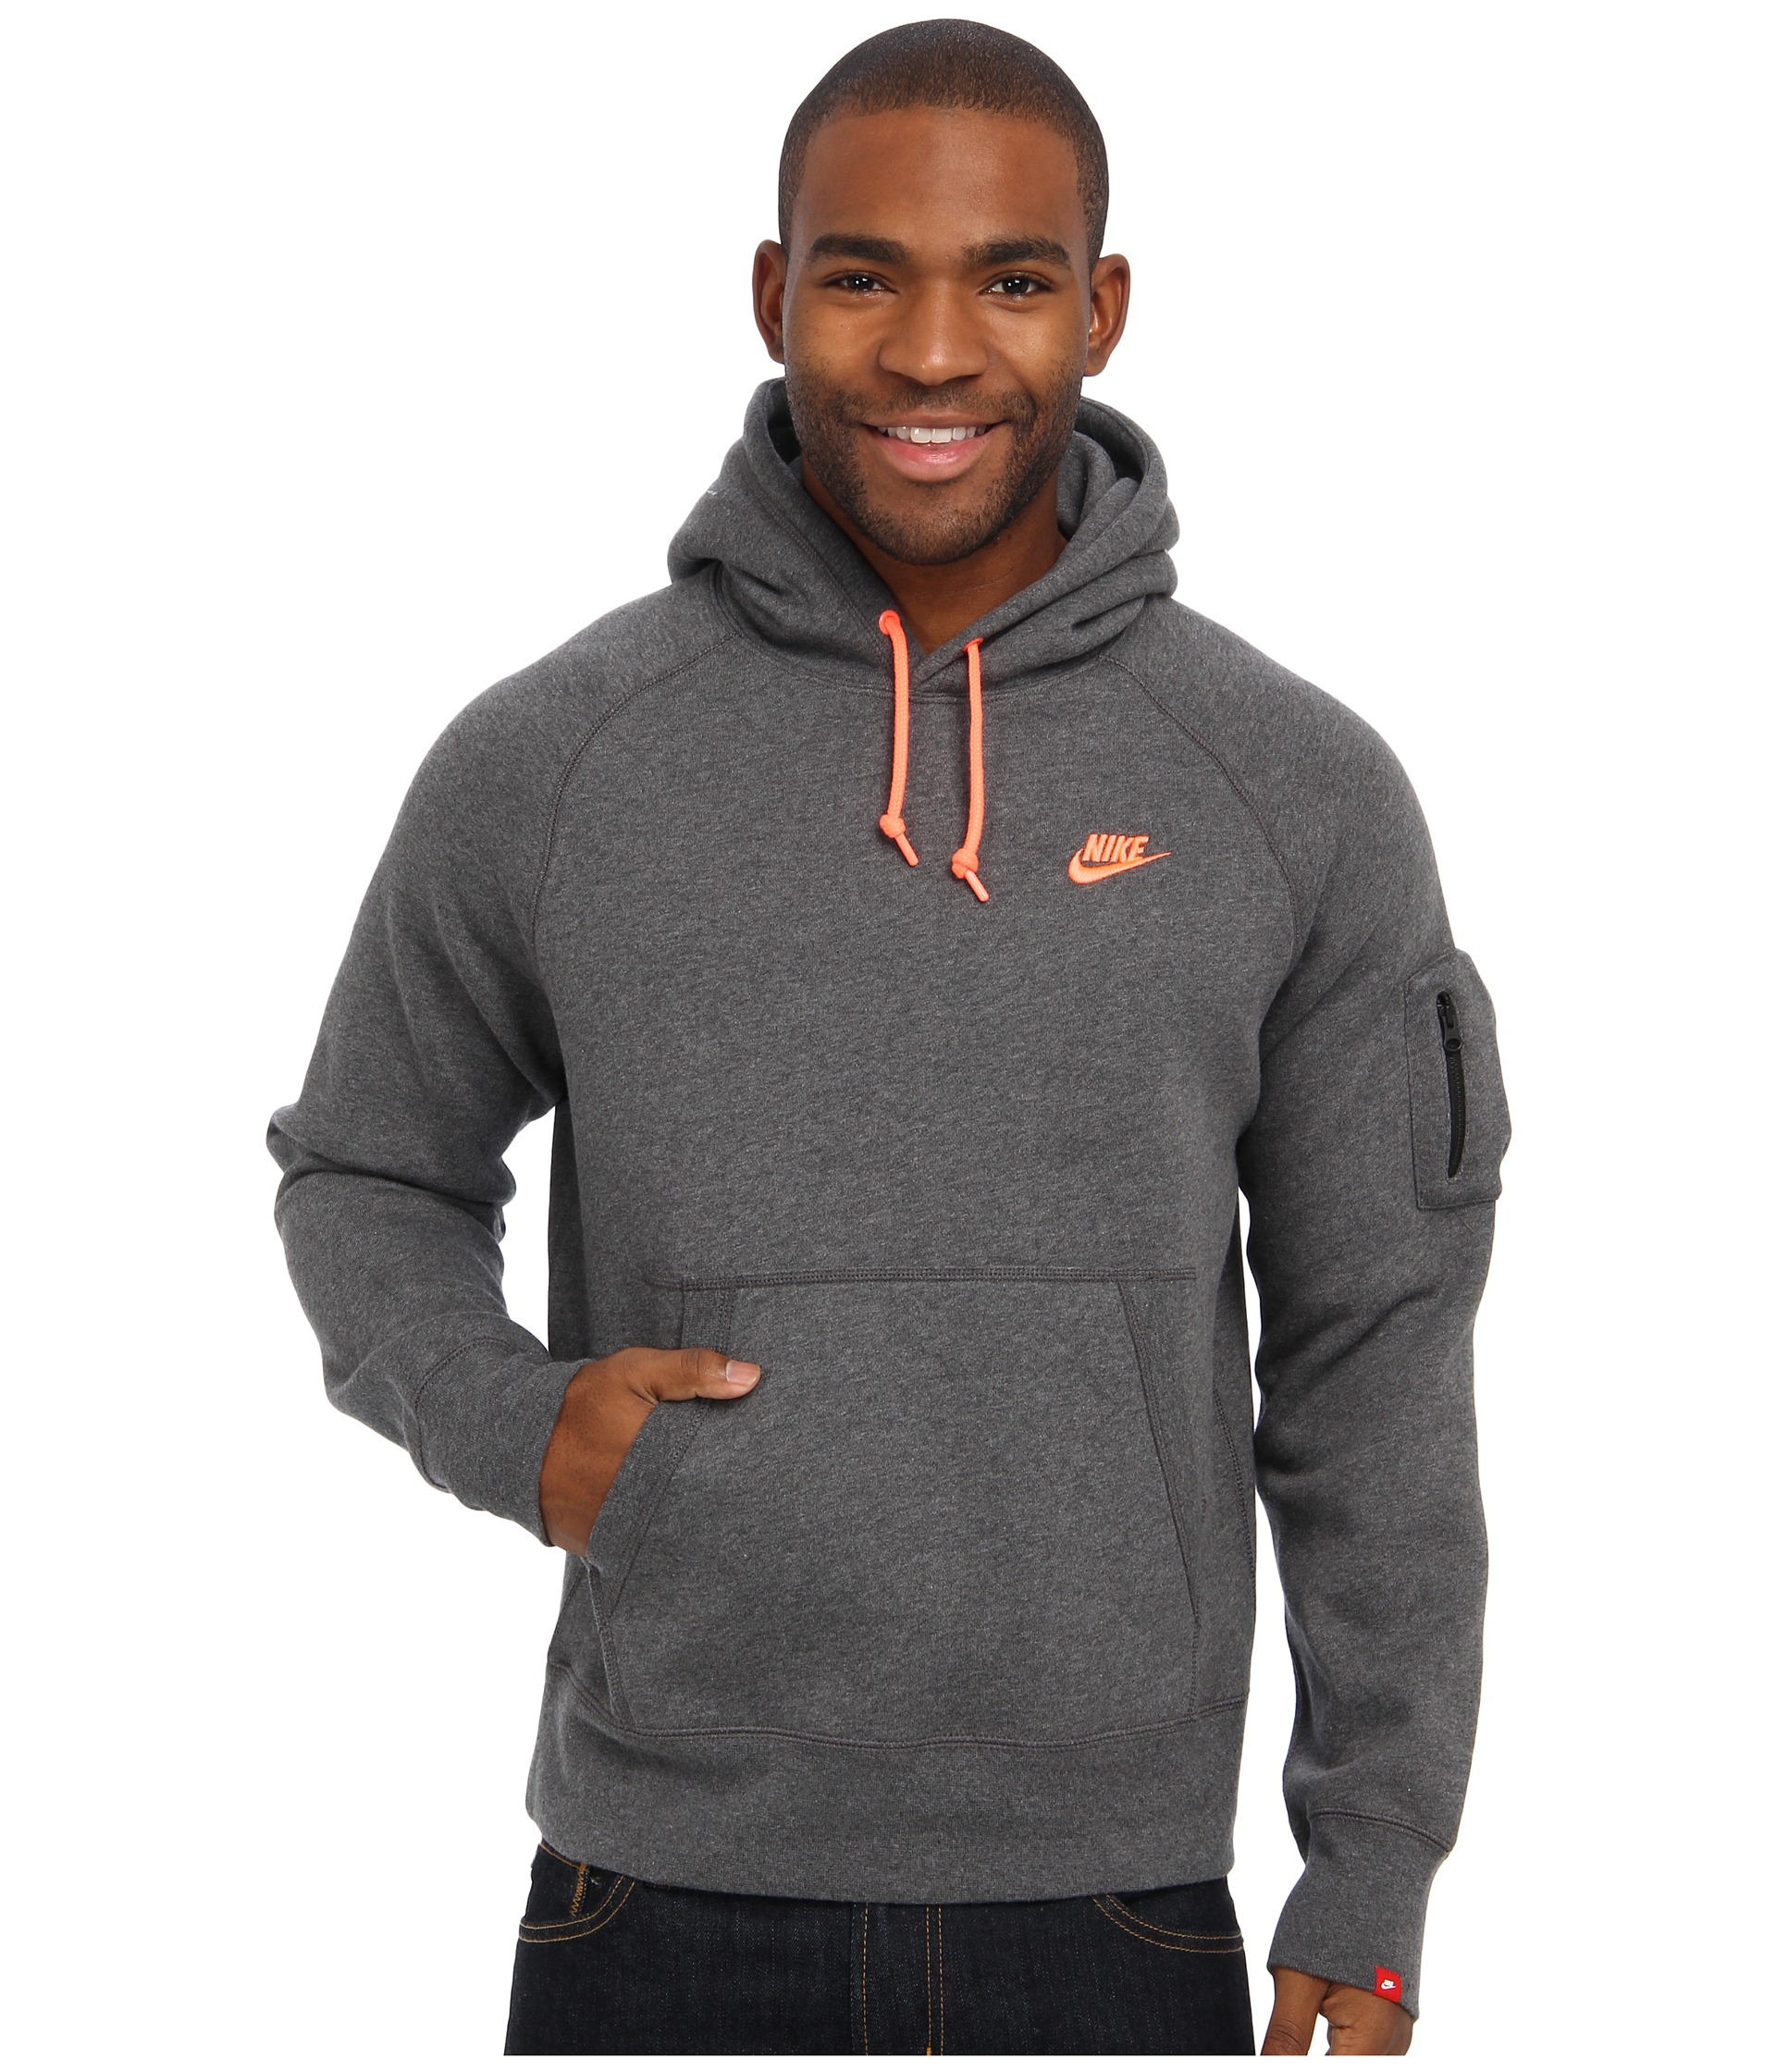 fecha Órgano digestivo sarcoma  Nike Aw77 Fleece Pullover Hoodie in Gray for Men - Lyst